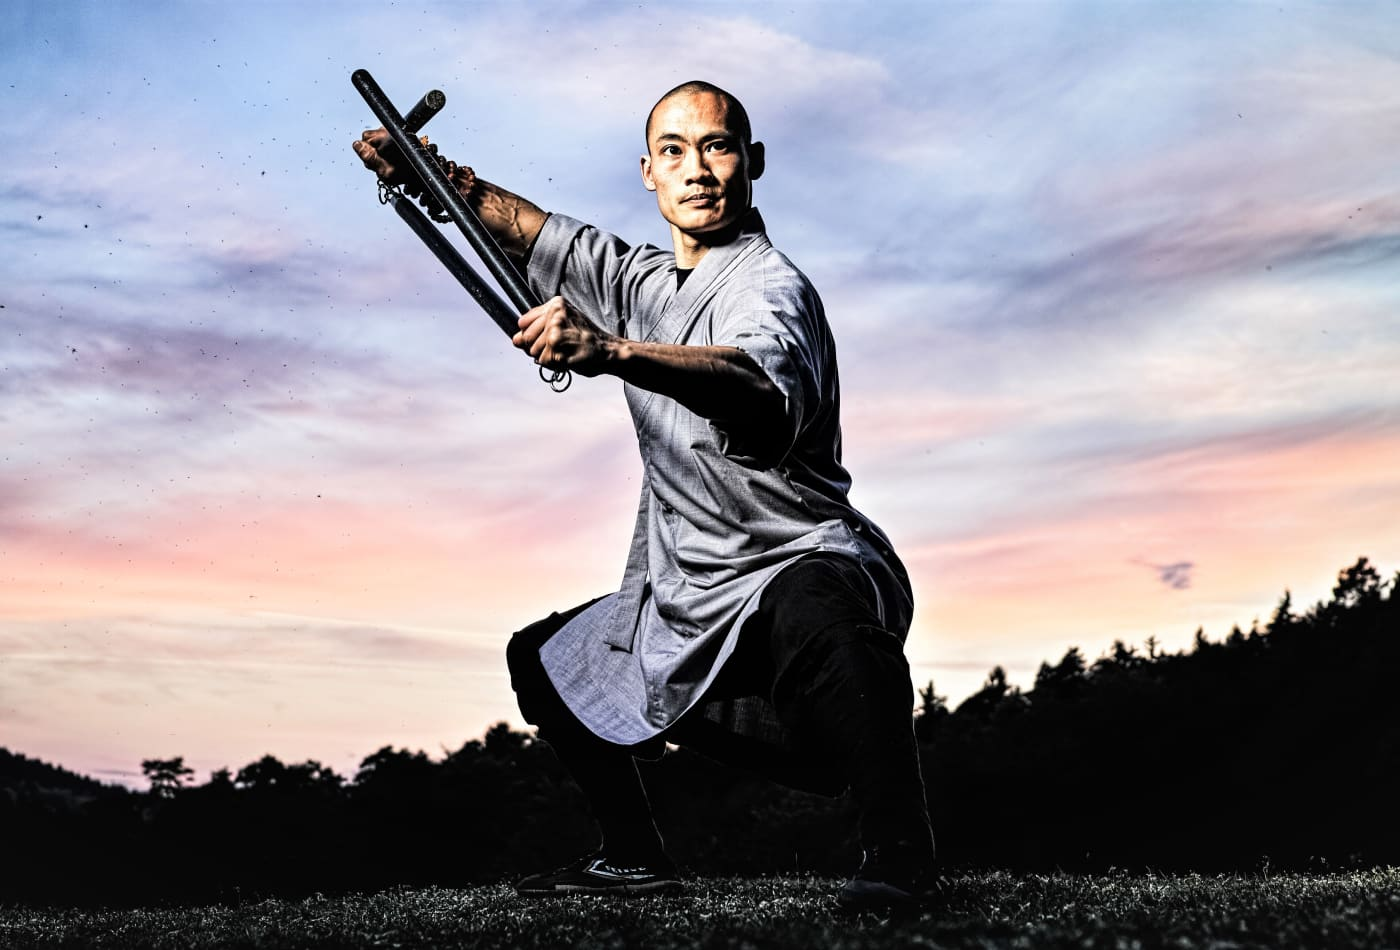 A Shaolin kung fu master shares the 5 mental states that hold us back in life—and how to fight them